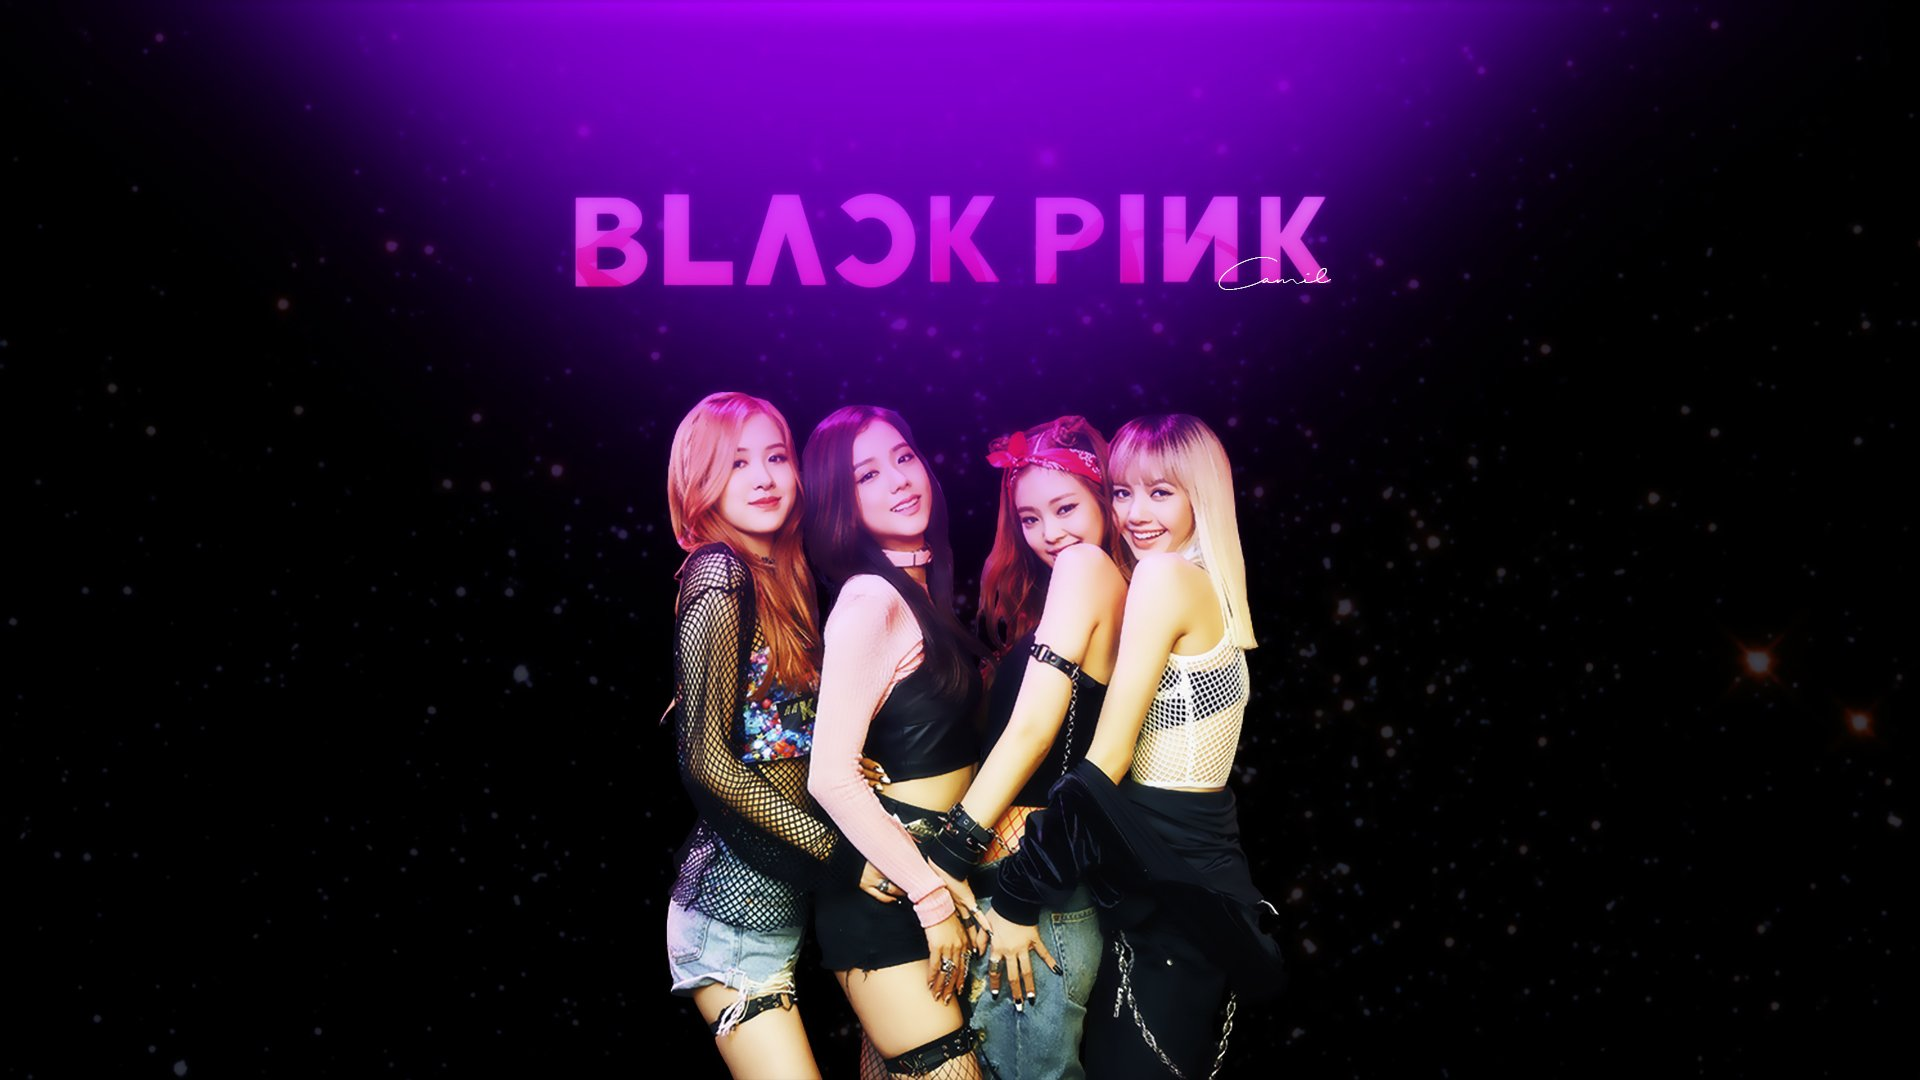 K pop BLACKPINK wallpaper HD Wallpaper Background Image 1920x1080